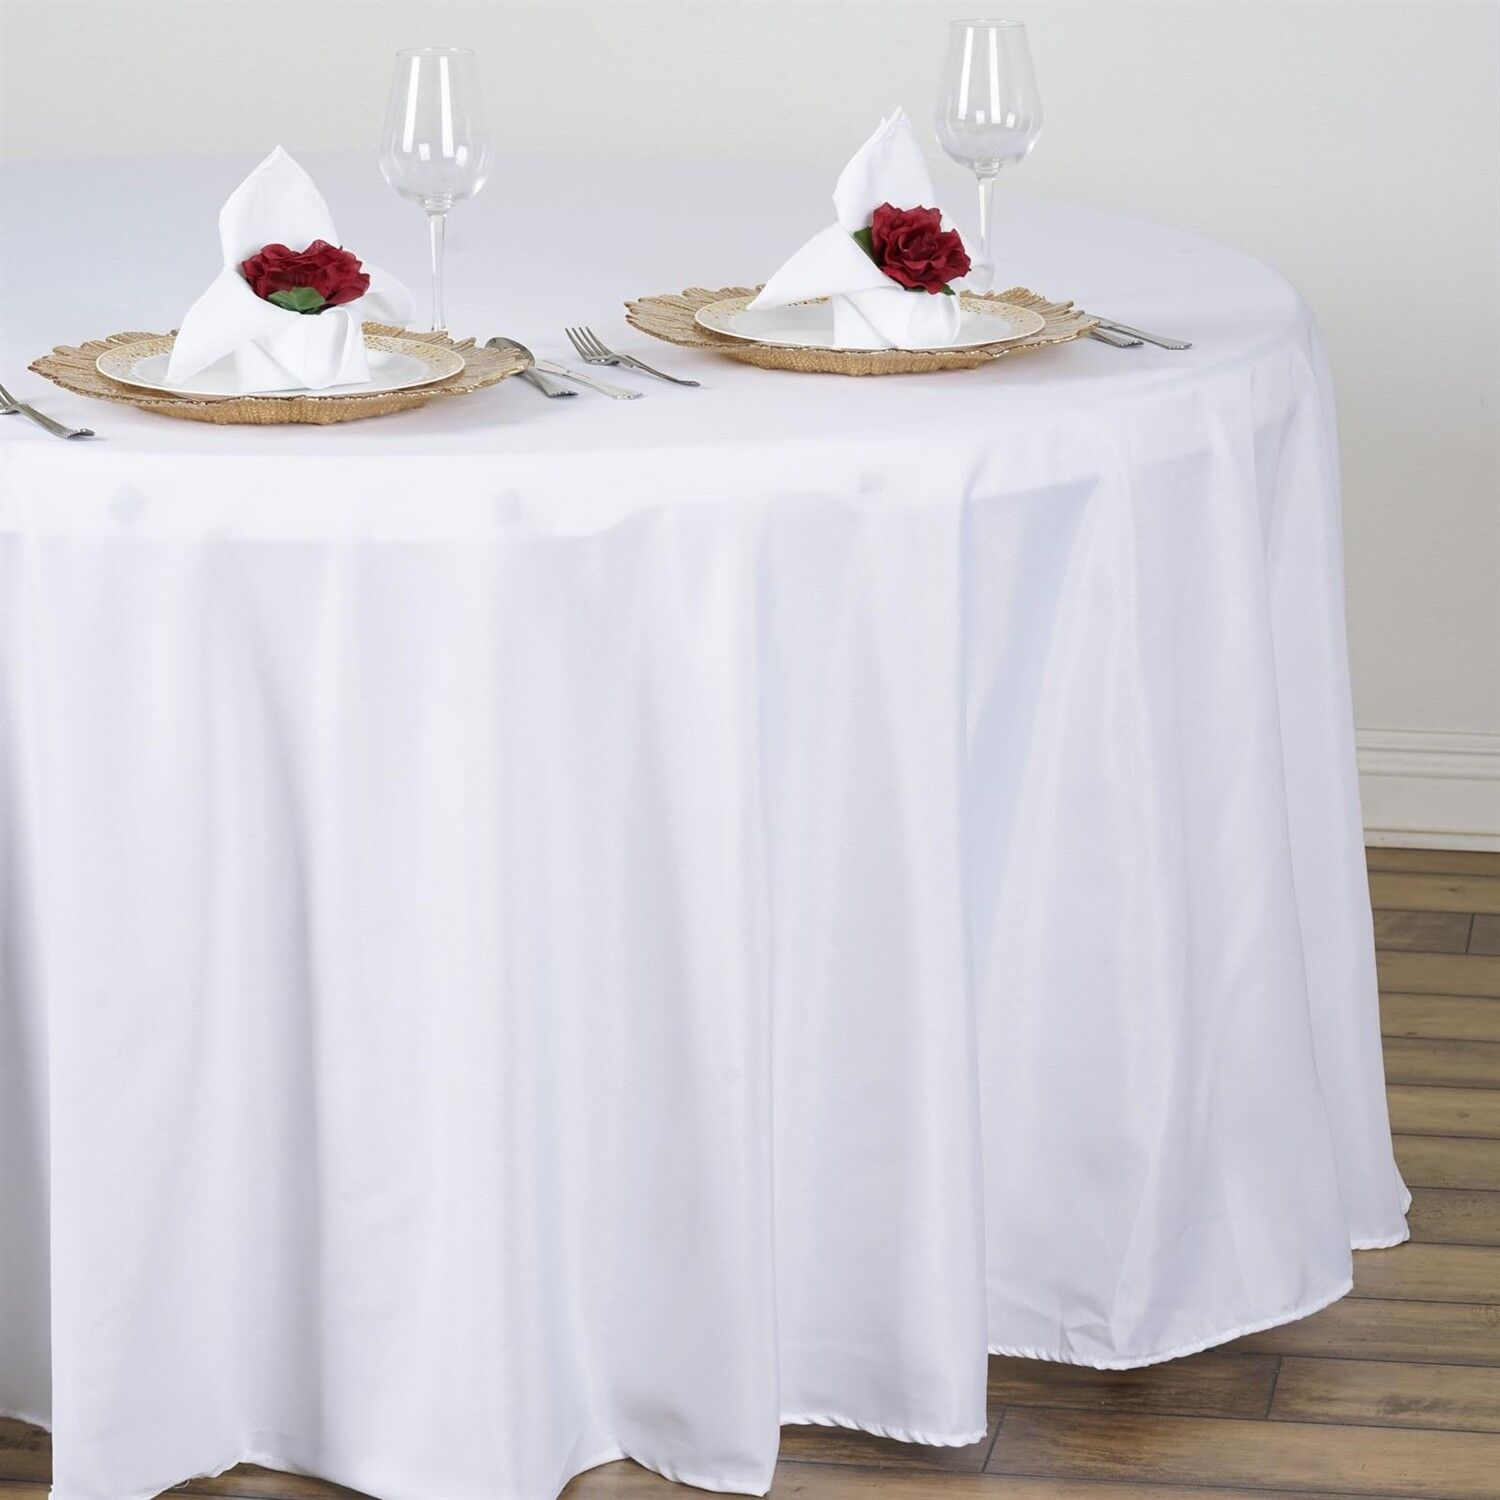 Weiß 108  inch ROUND Tablecloth Polyester Polyester Polyester Party WEDDING 5' Feet Table Cover USA 434a6f